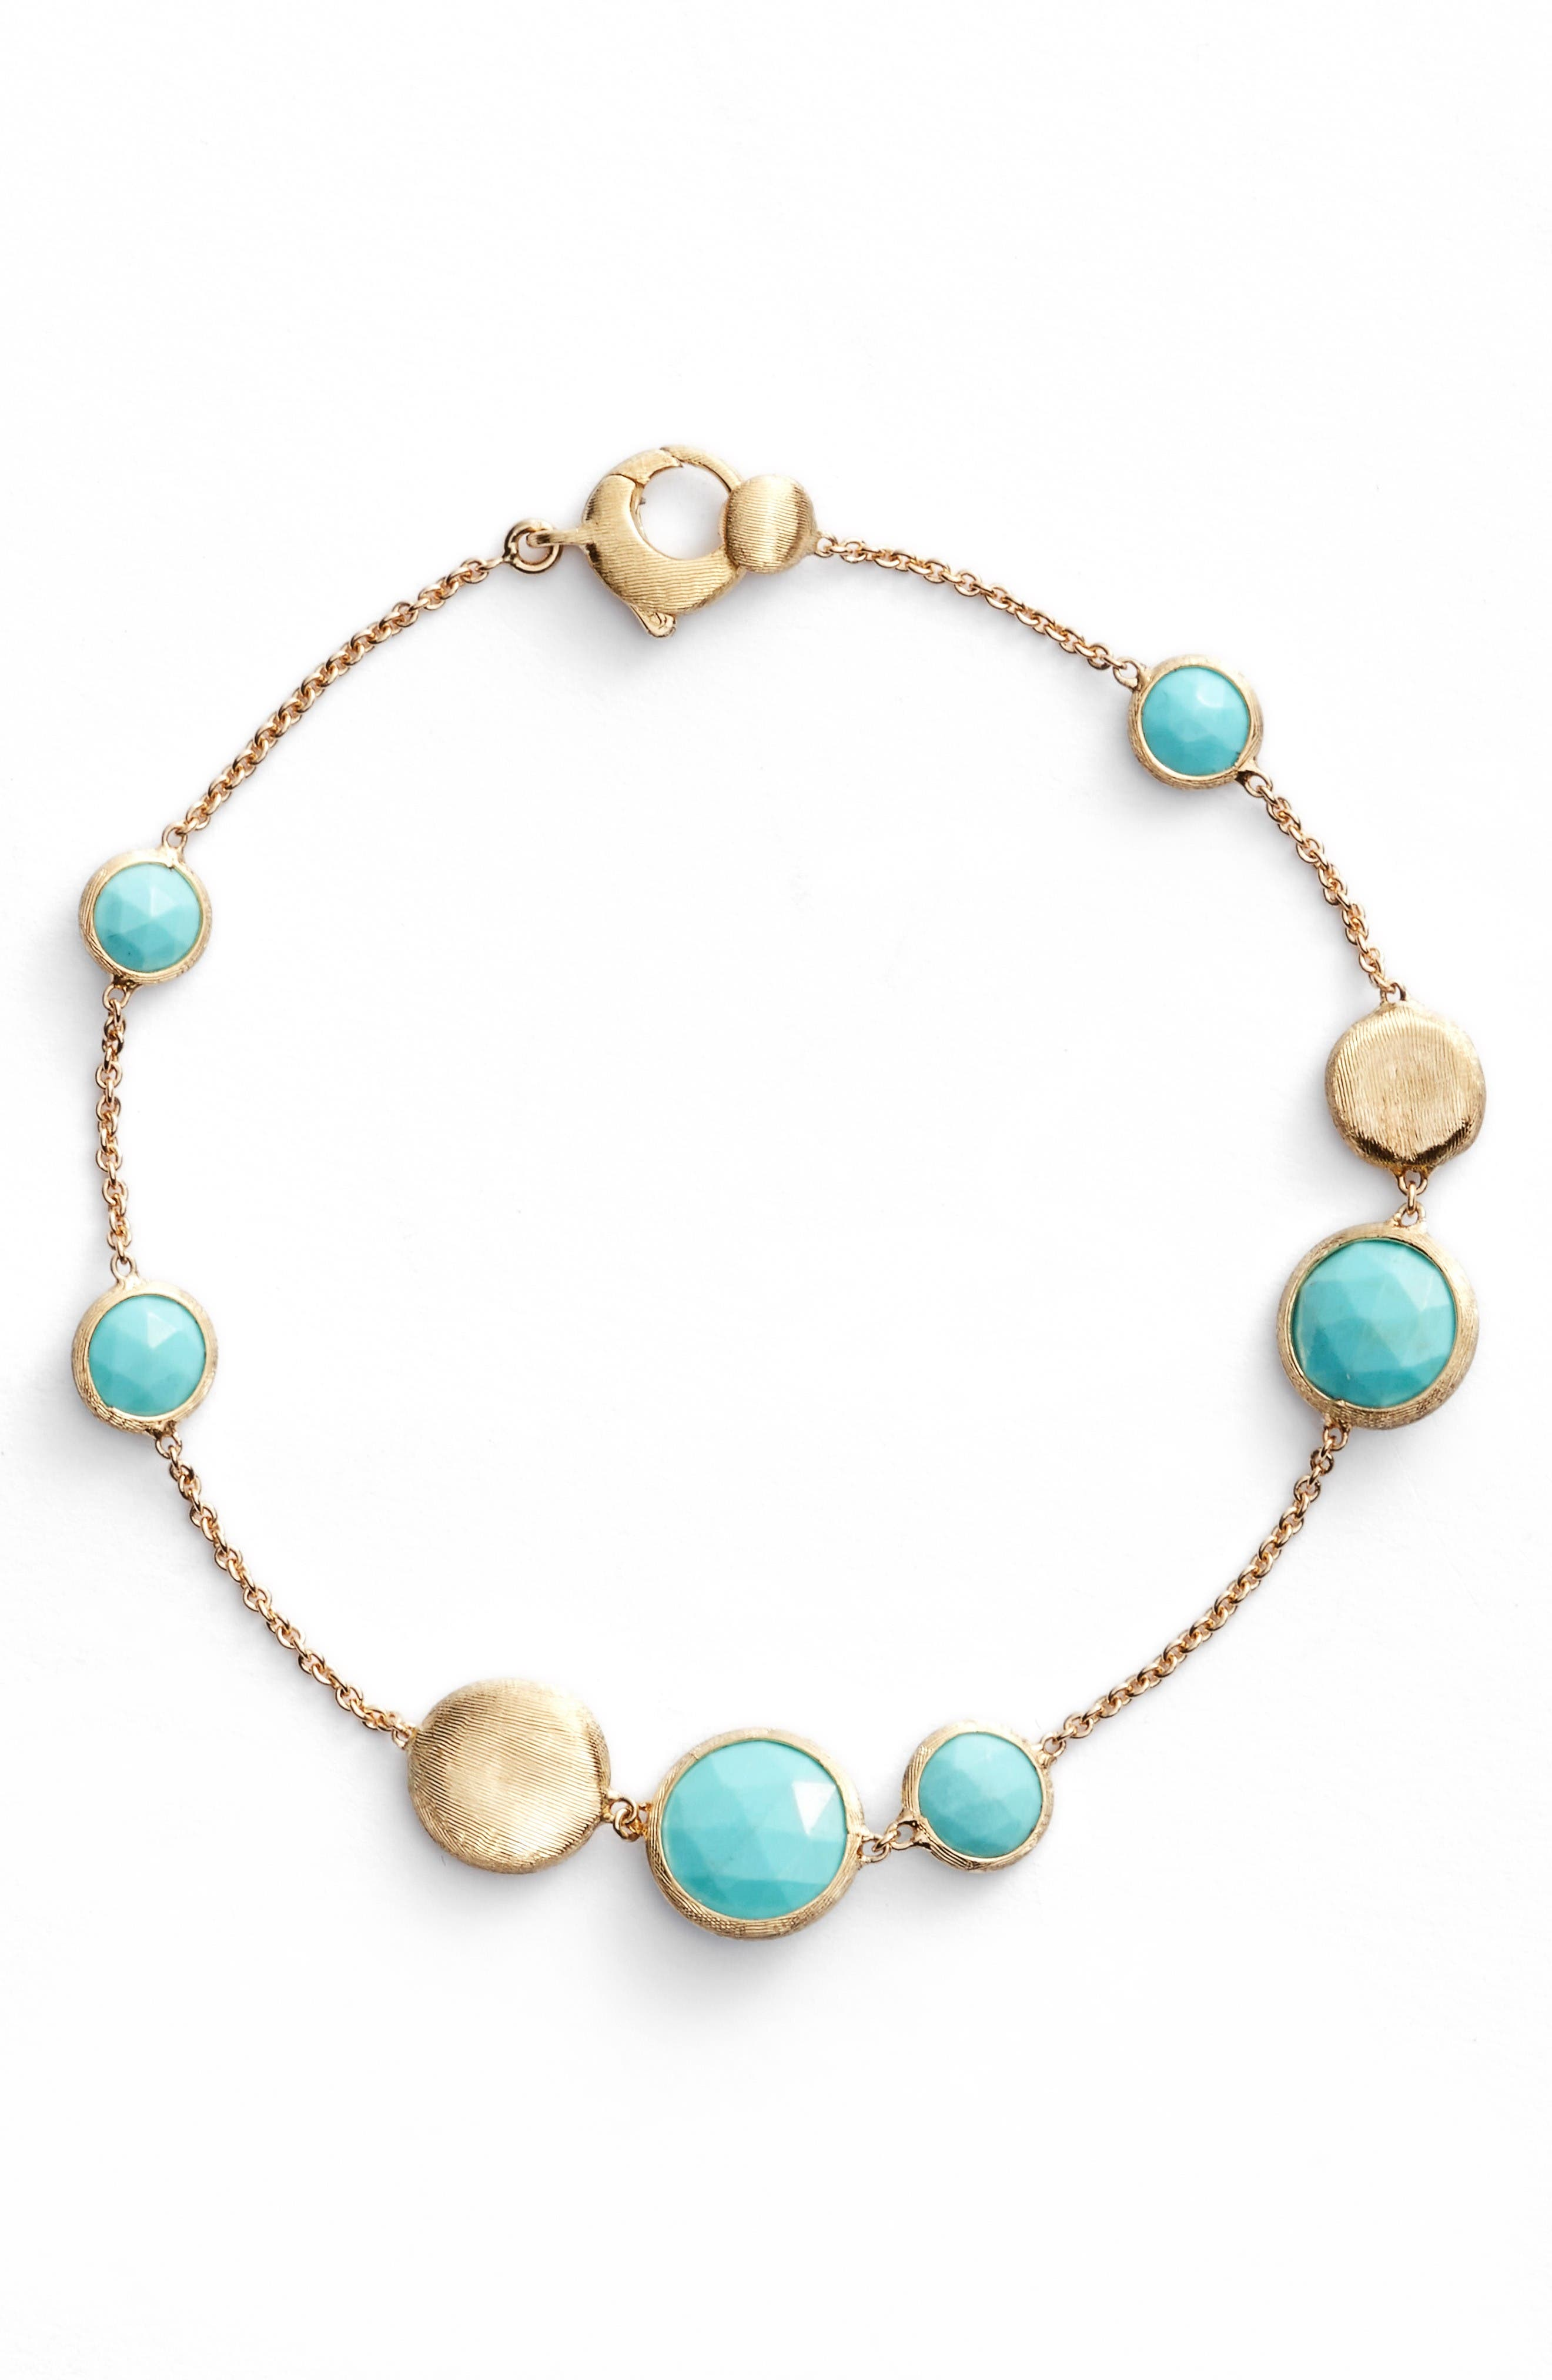 Jaipur Turquoise Bracelet,                             Main thumbnail 1, color,                             Yellow Gold/ Turquoise